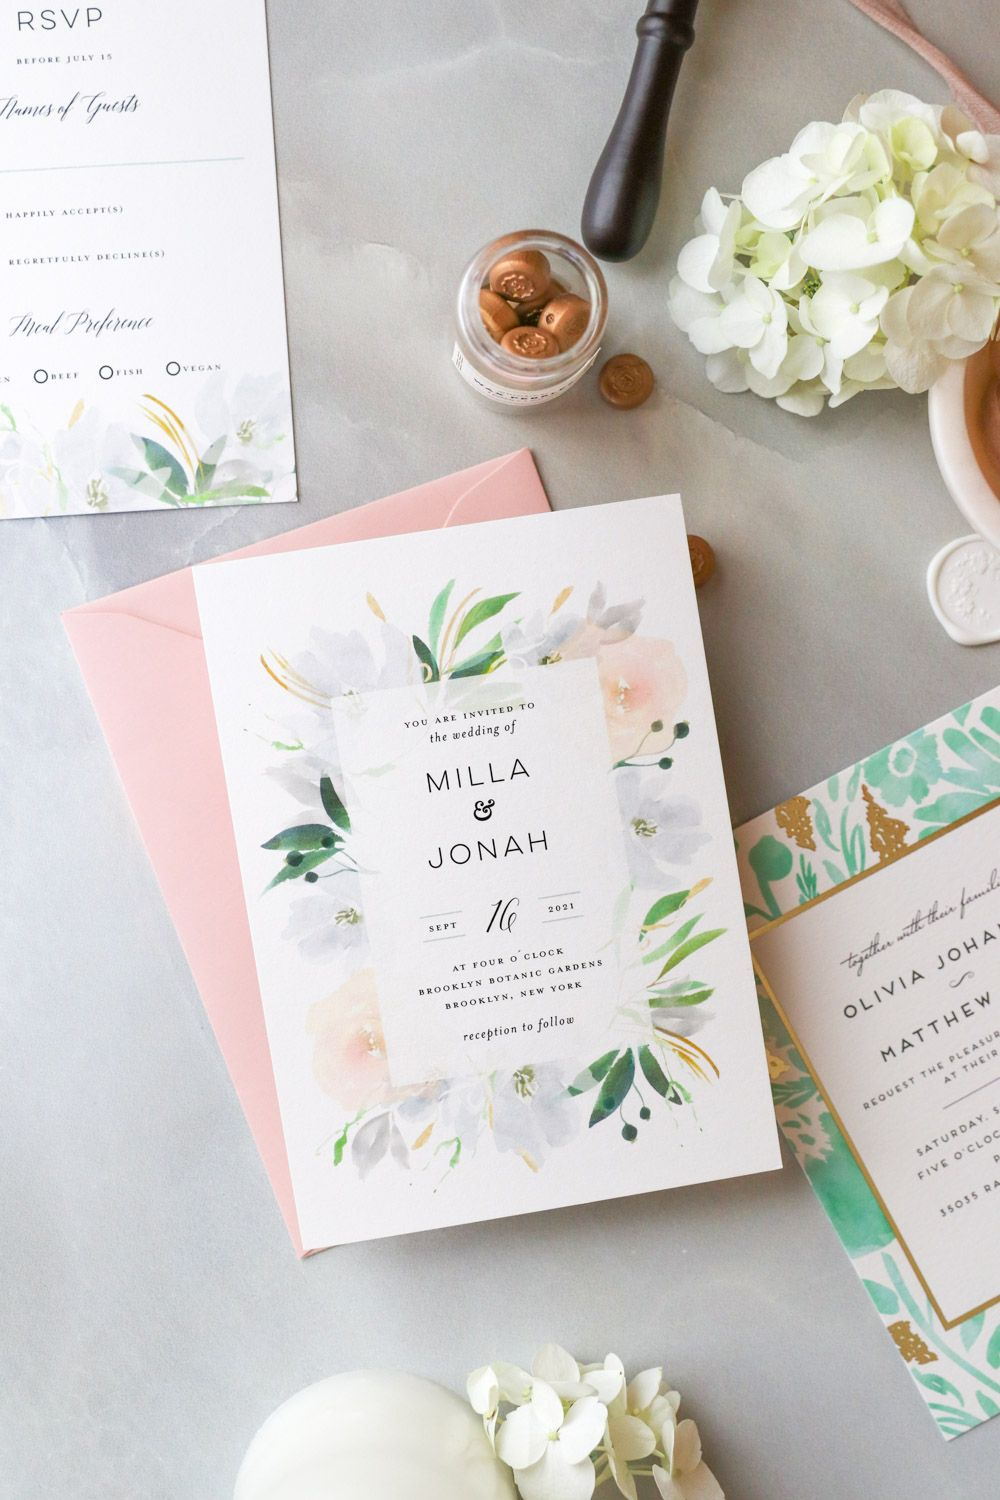 If You Re Hunting For Wedding Invitations Chances Are You Ve Heard Of Minted We Have Too Turns Ou Minted Wedding Invitations Wedding Invitations Invitations